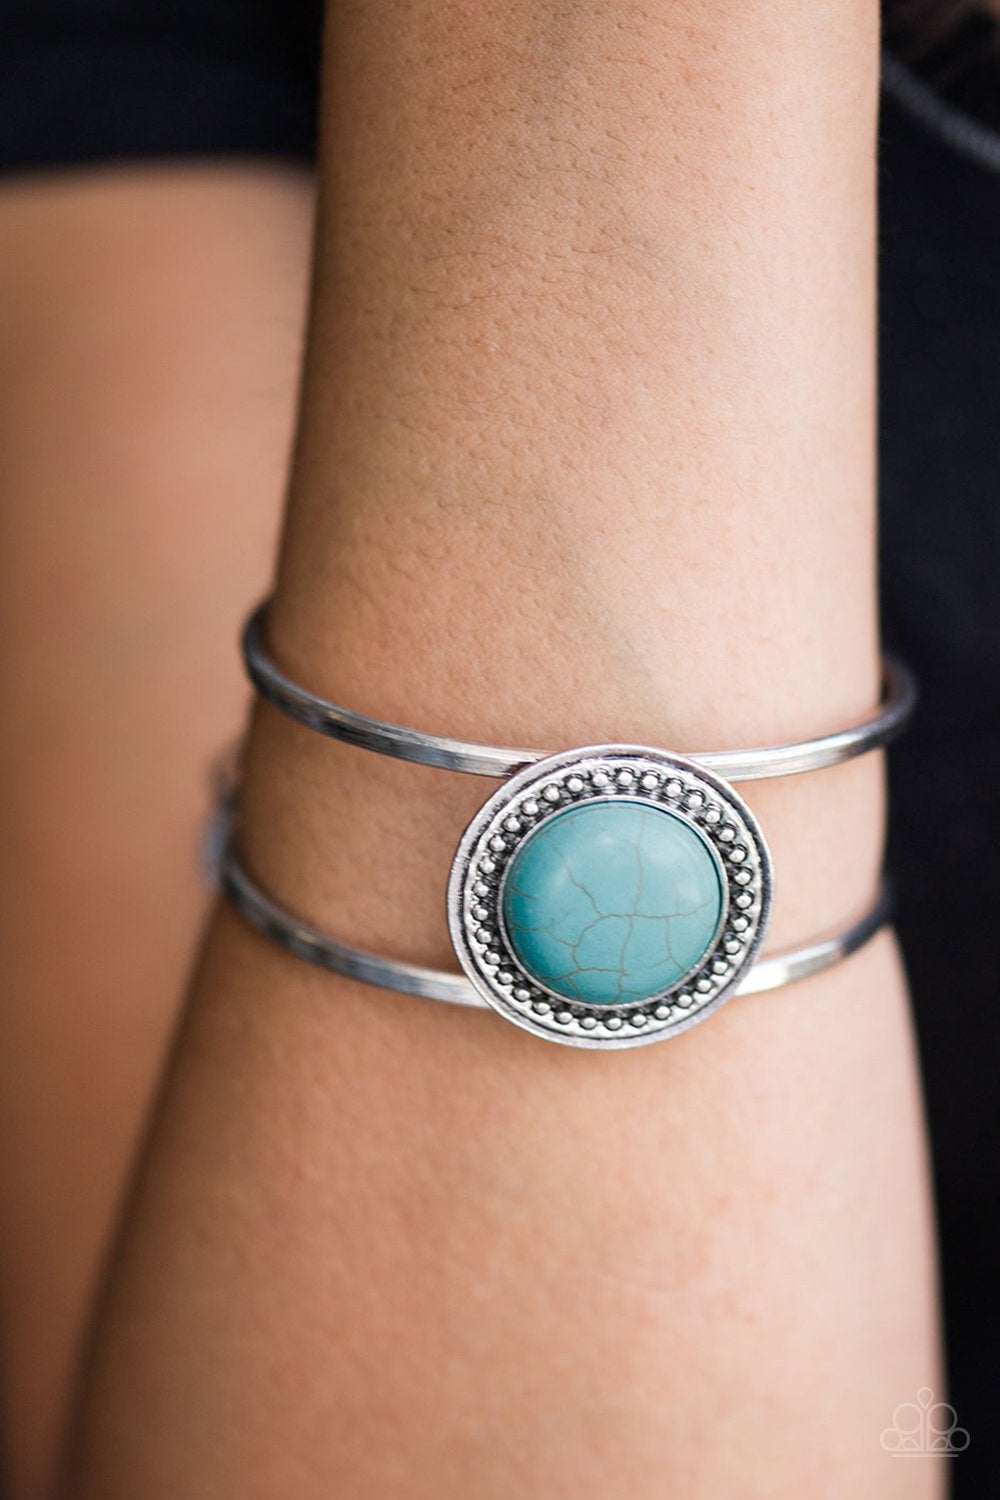 Two silver bars curl around the wrist, creating an airy cuff. Brushed in an antiqued finish, silver studs dance around a refreshing turquoise stone for a chic Southwestern inspired style.